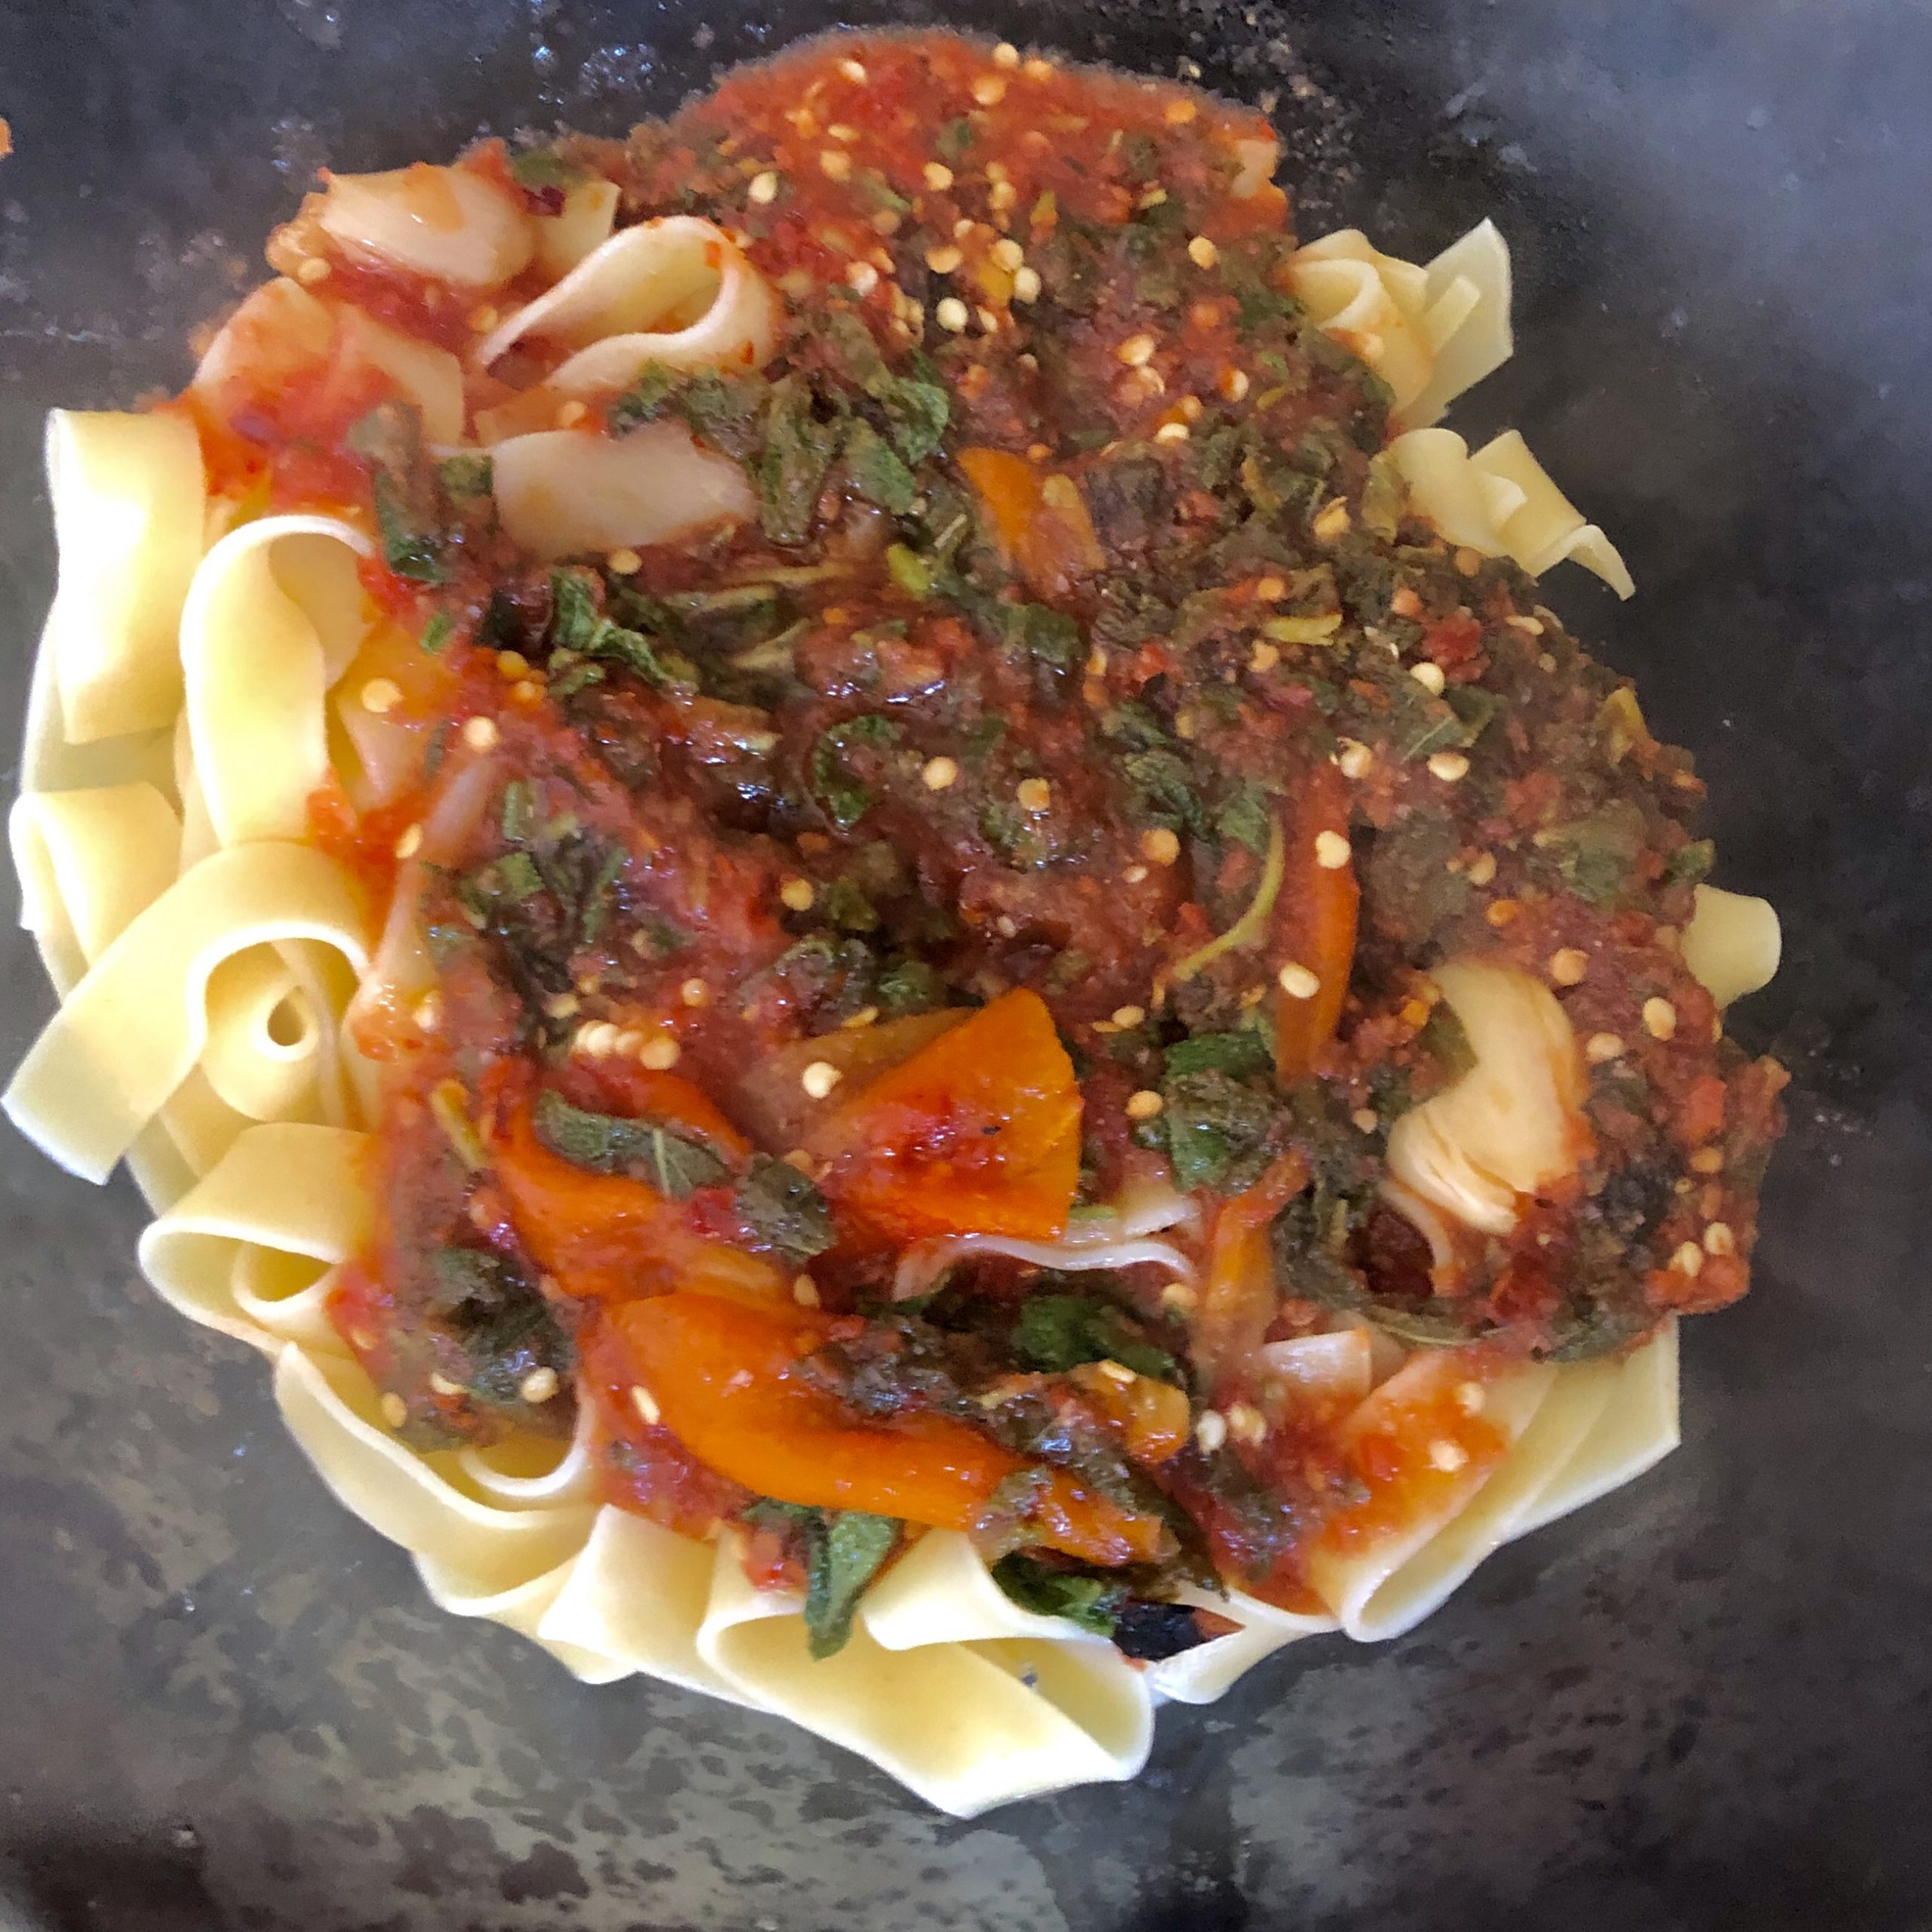 Pappardelle with tomato sage sauce